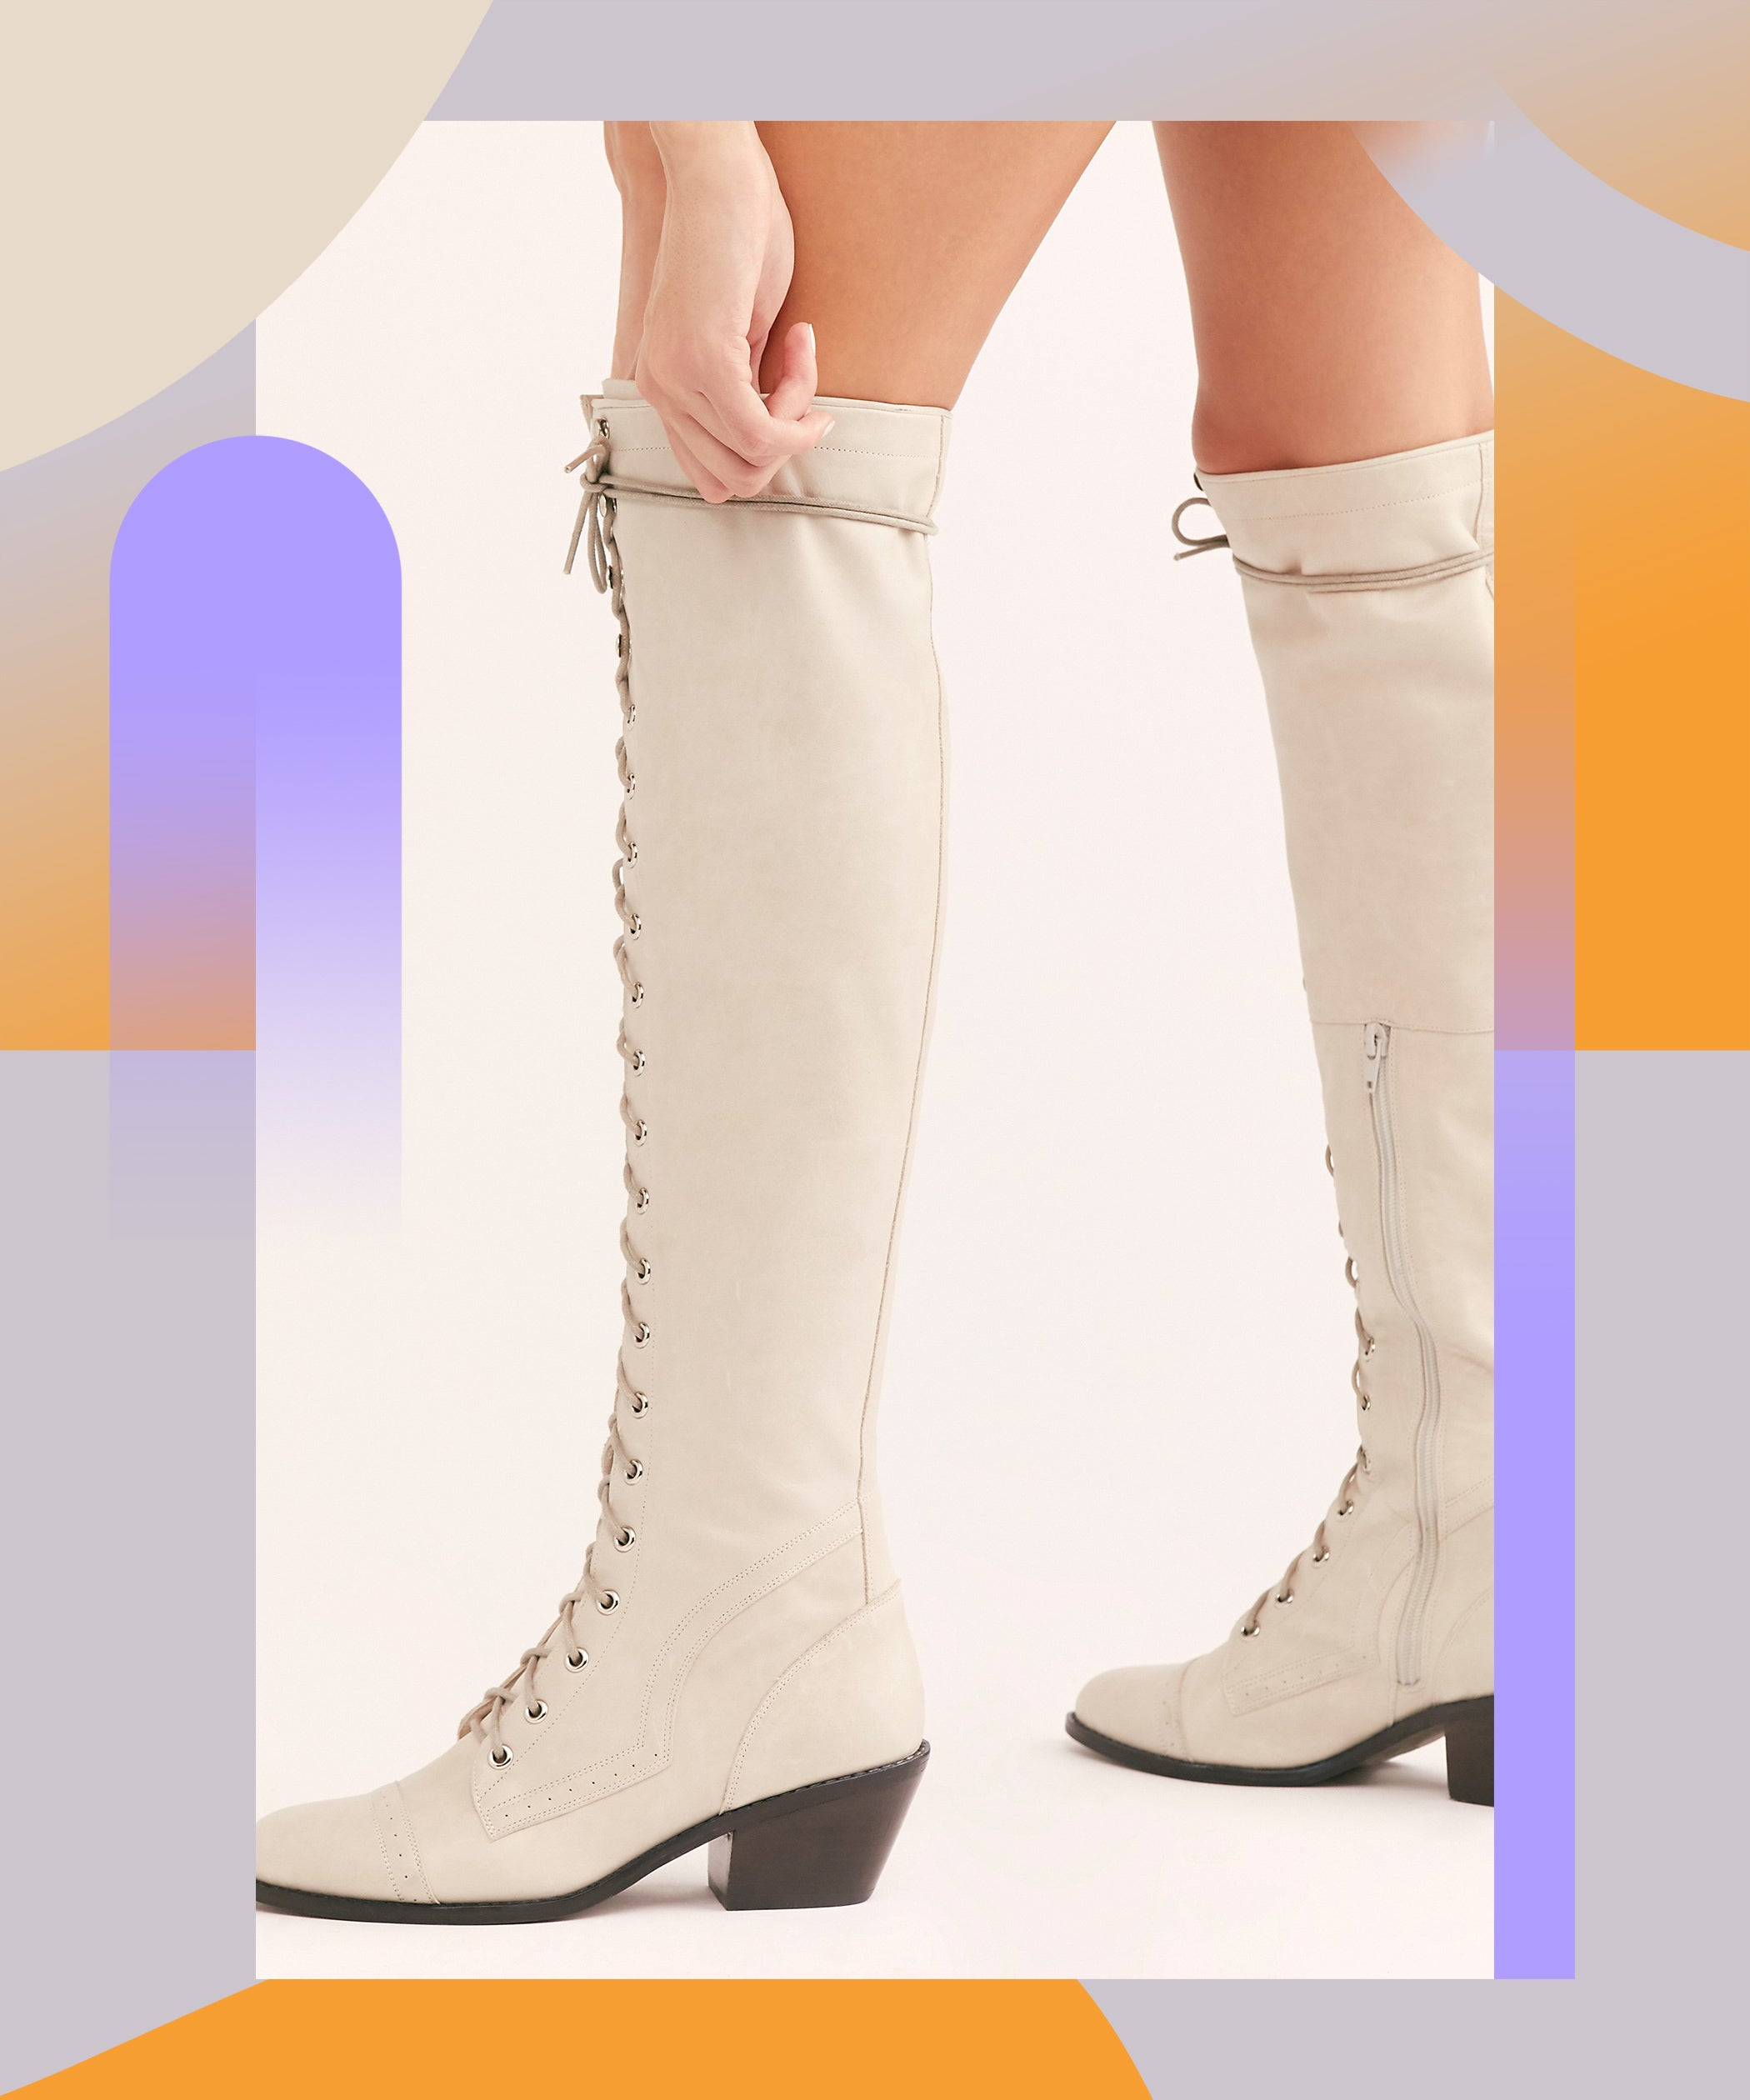 Lace Up Boots For Women Fall Winter